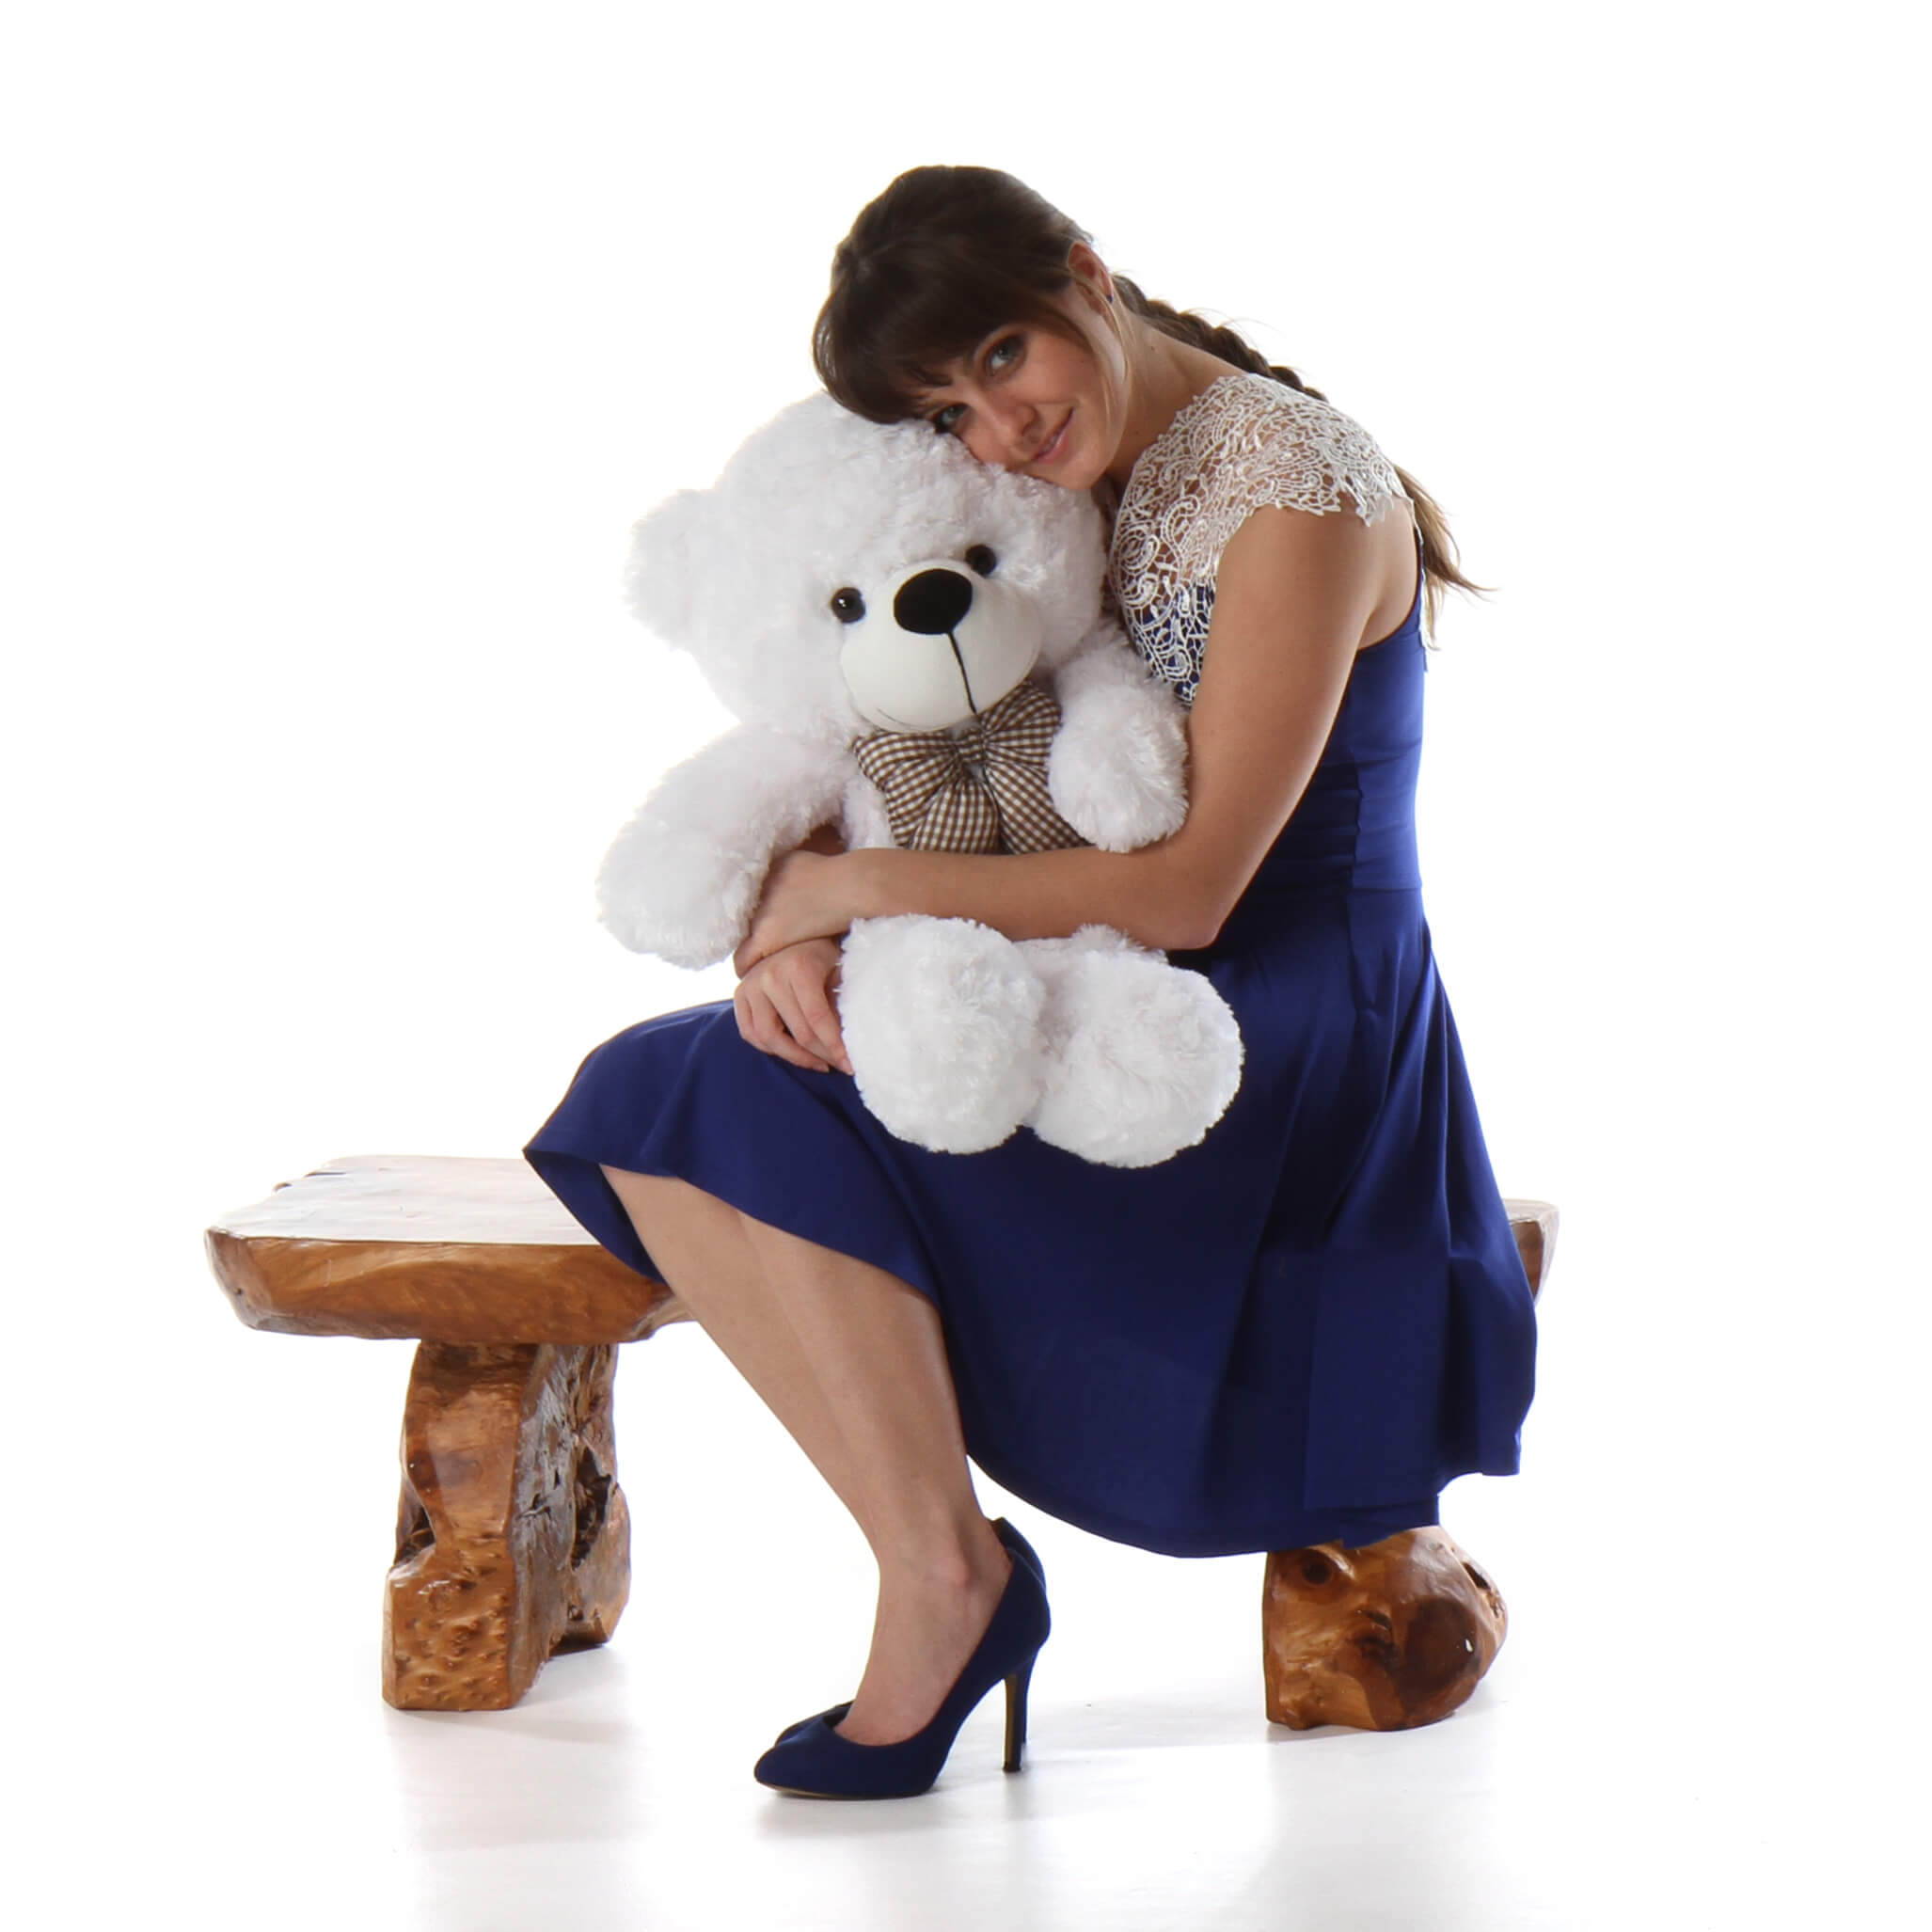 huggable-oversized-white-teddy-bear-coco-cuddles-30in-1.jpg